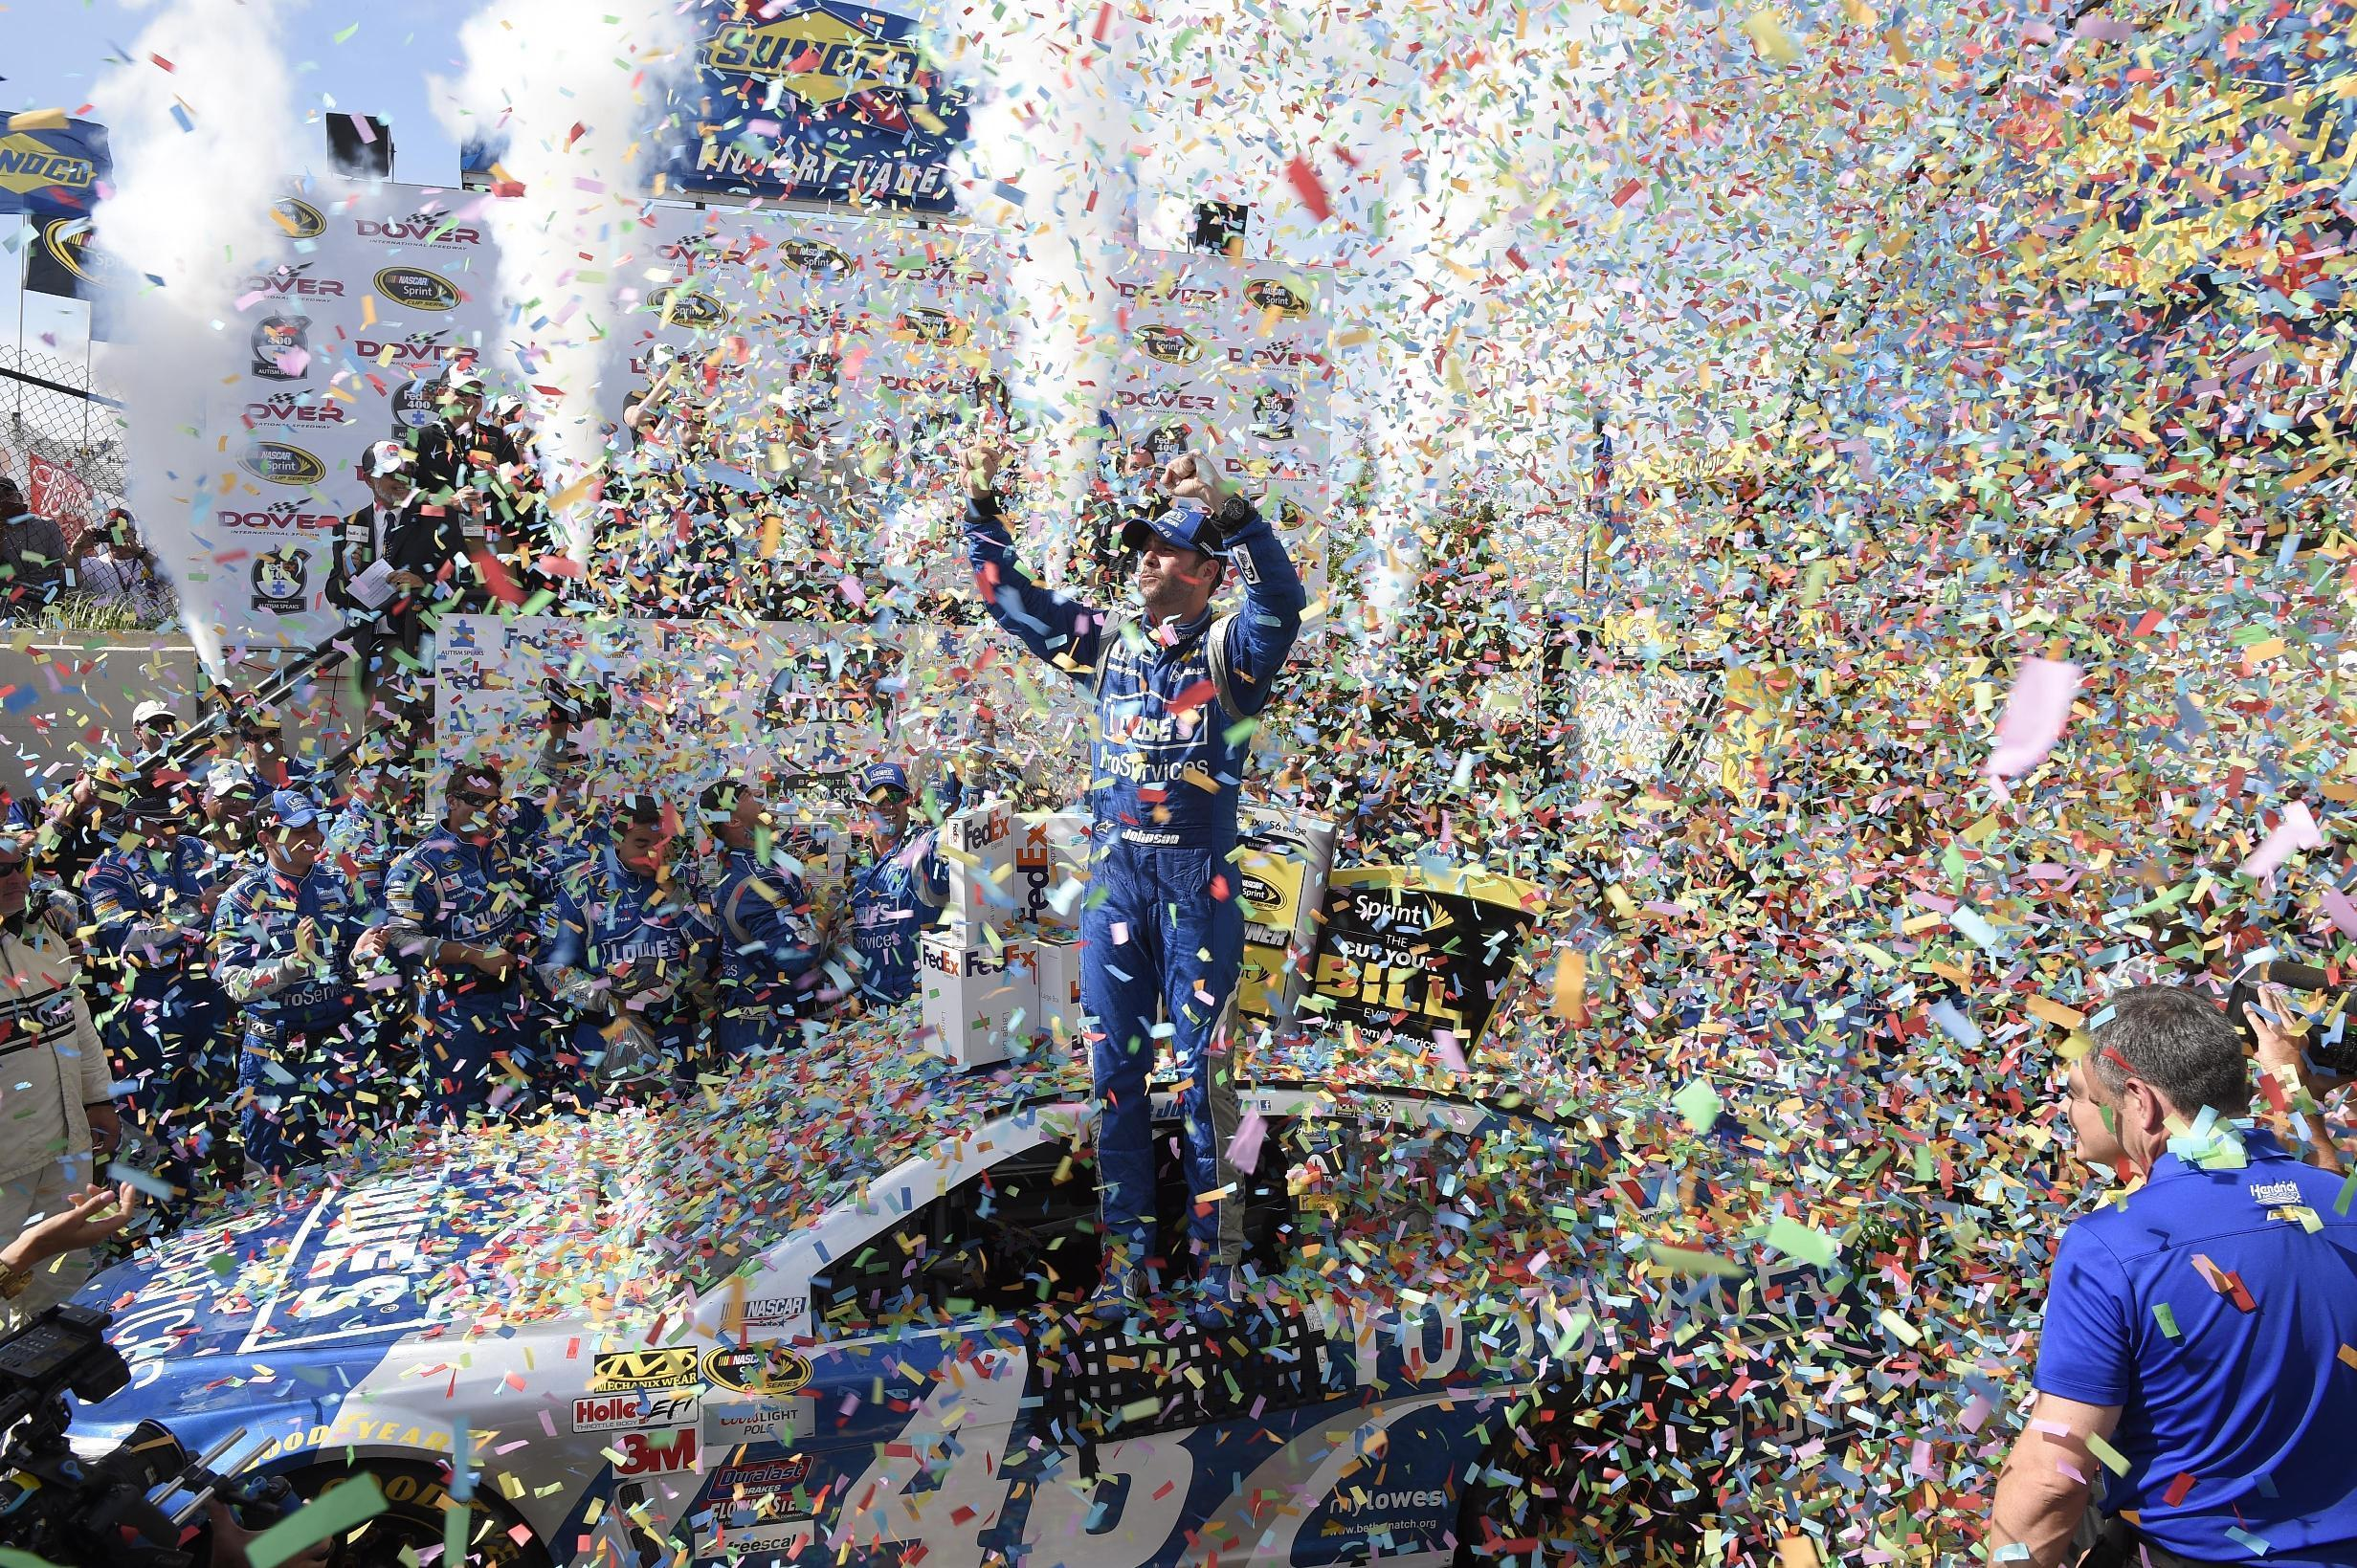 Johnson makes history with 10th win at Dover